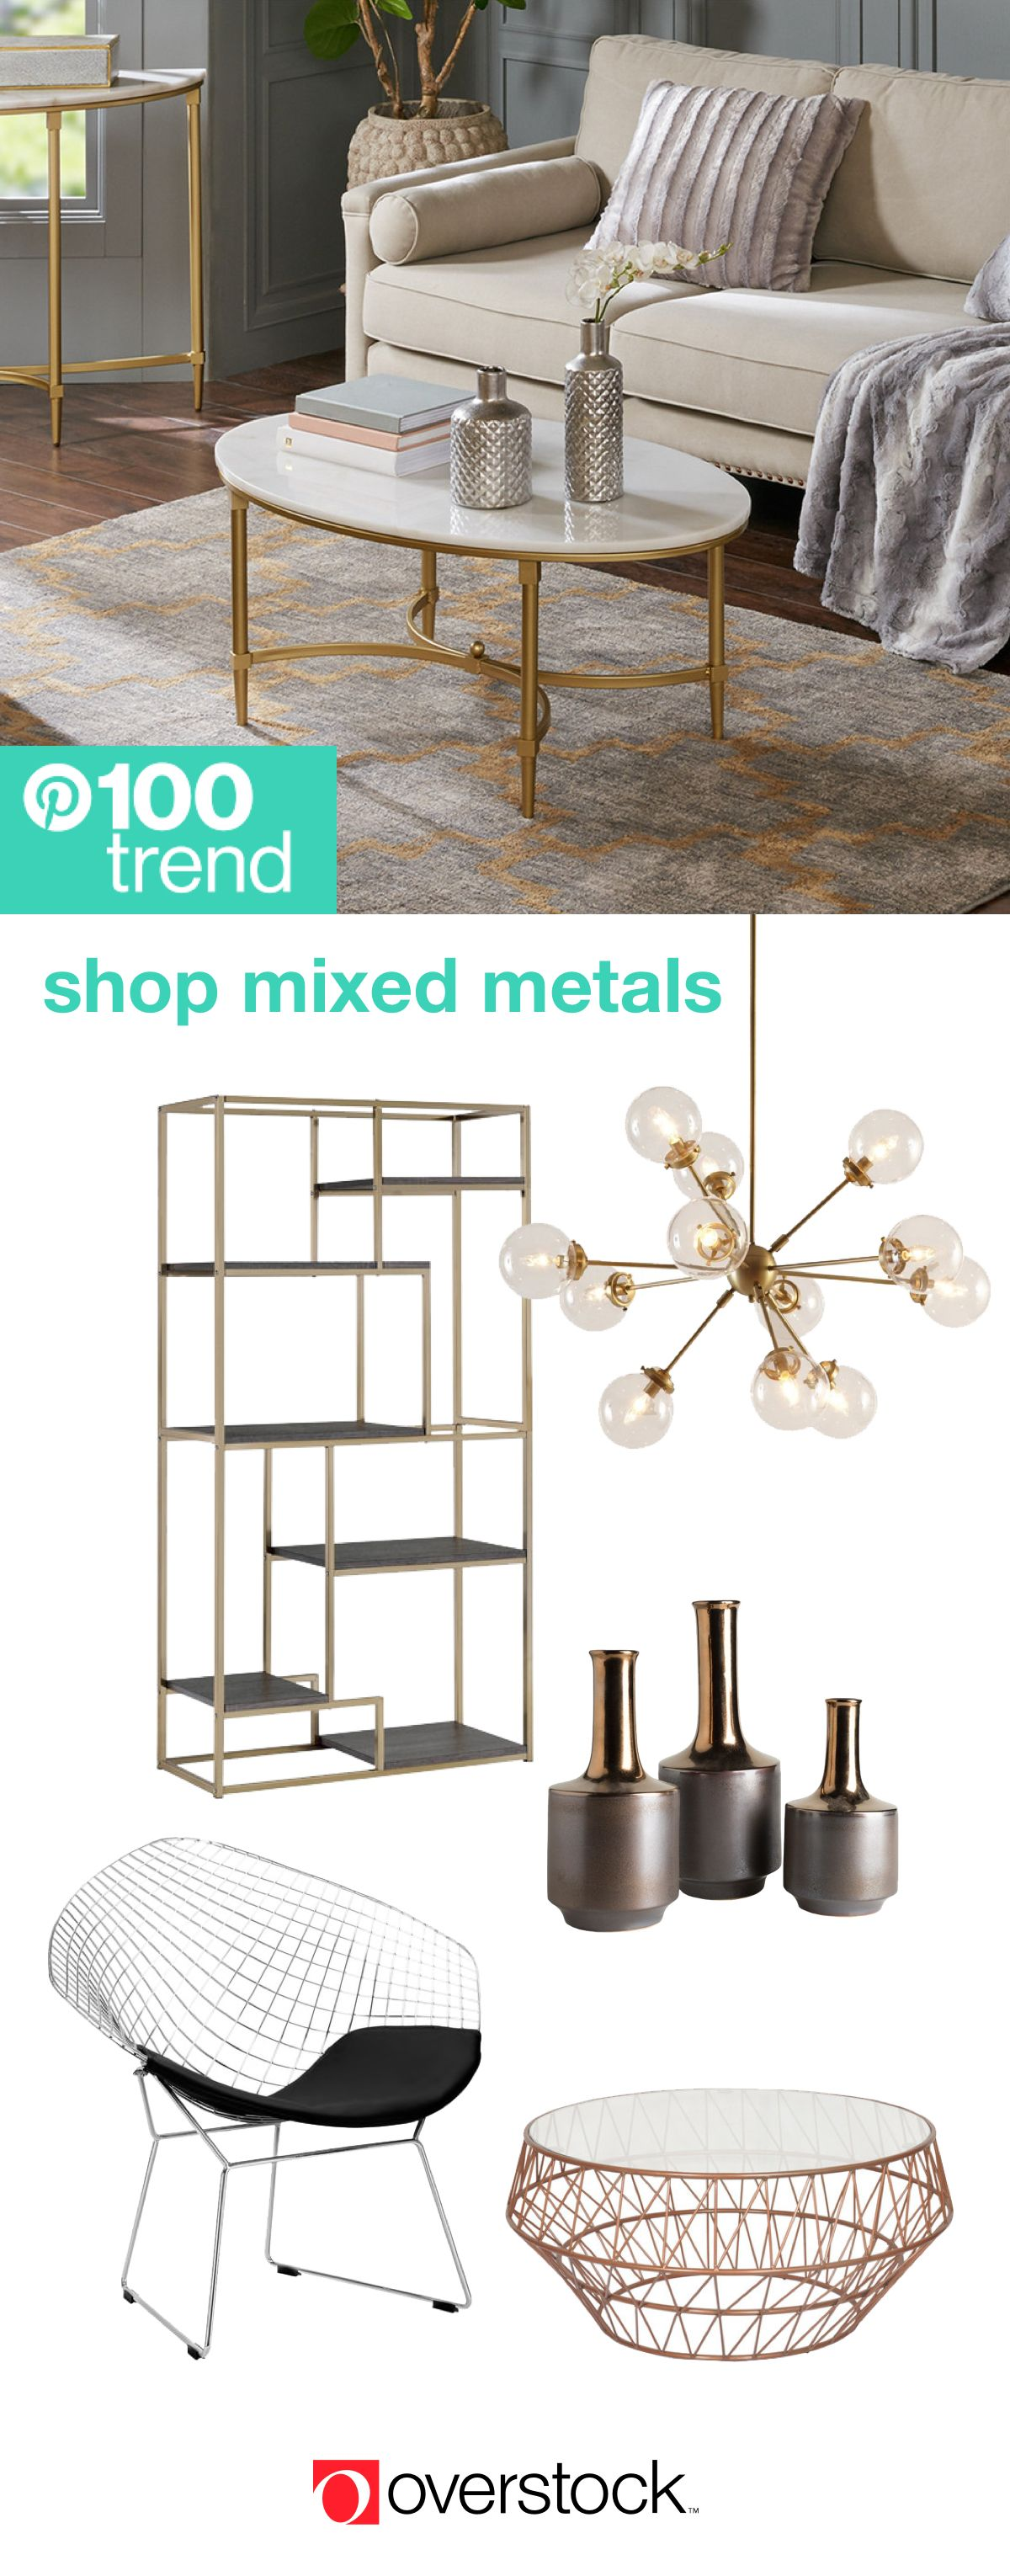 Maison Decor Tin Ceilings: Mixed Metal Decor For An On-Trend Look